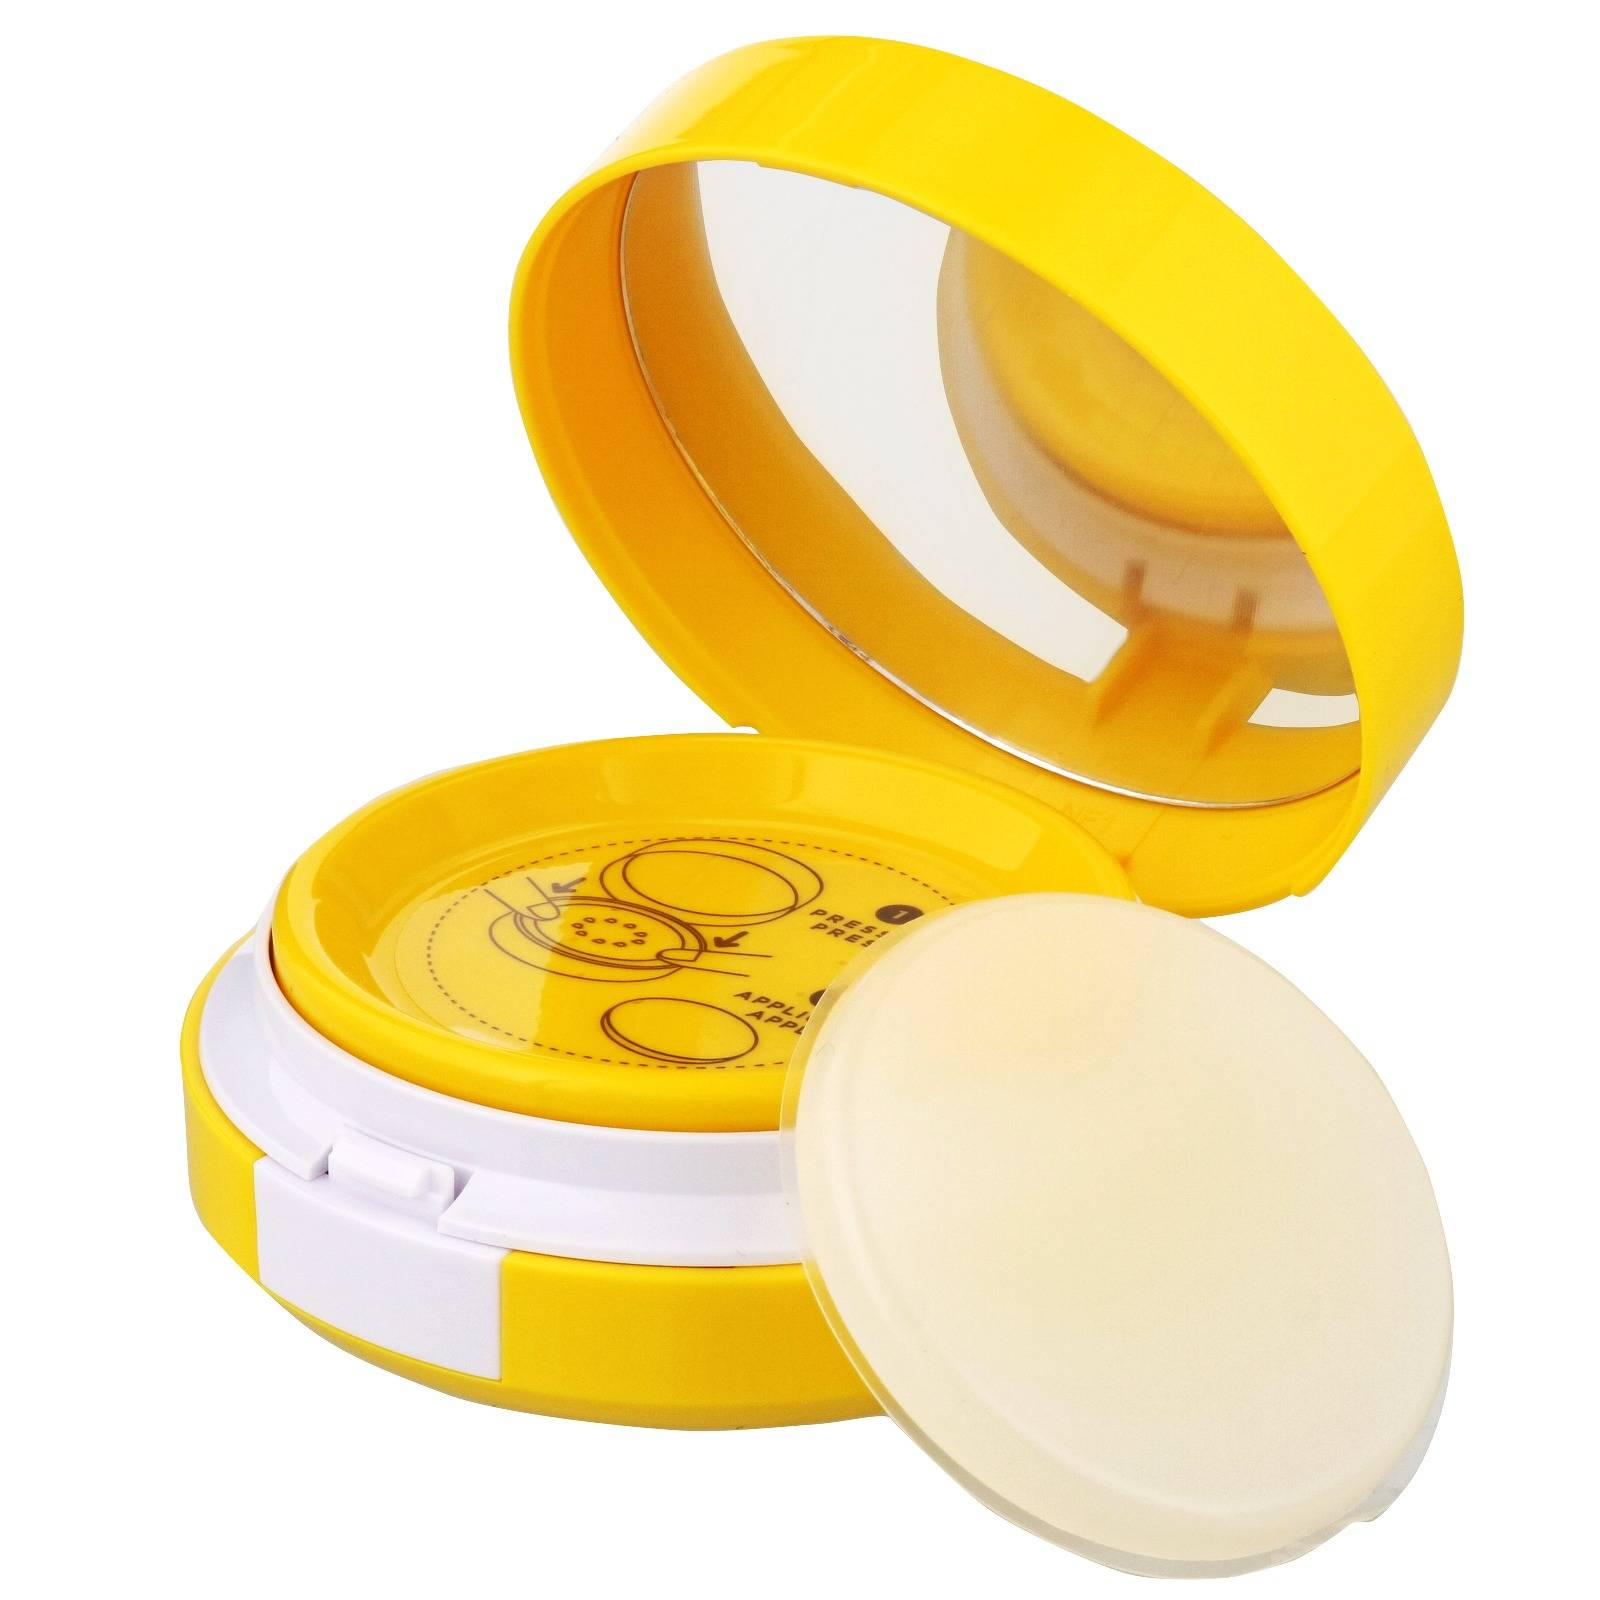 Clarins - Sun Care Mineral Compact for Face SPF30 11.5g for Men and Women